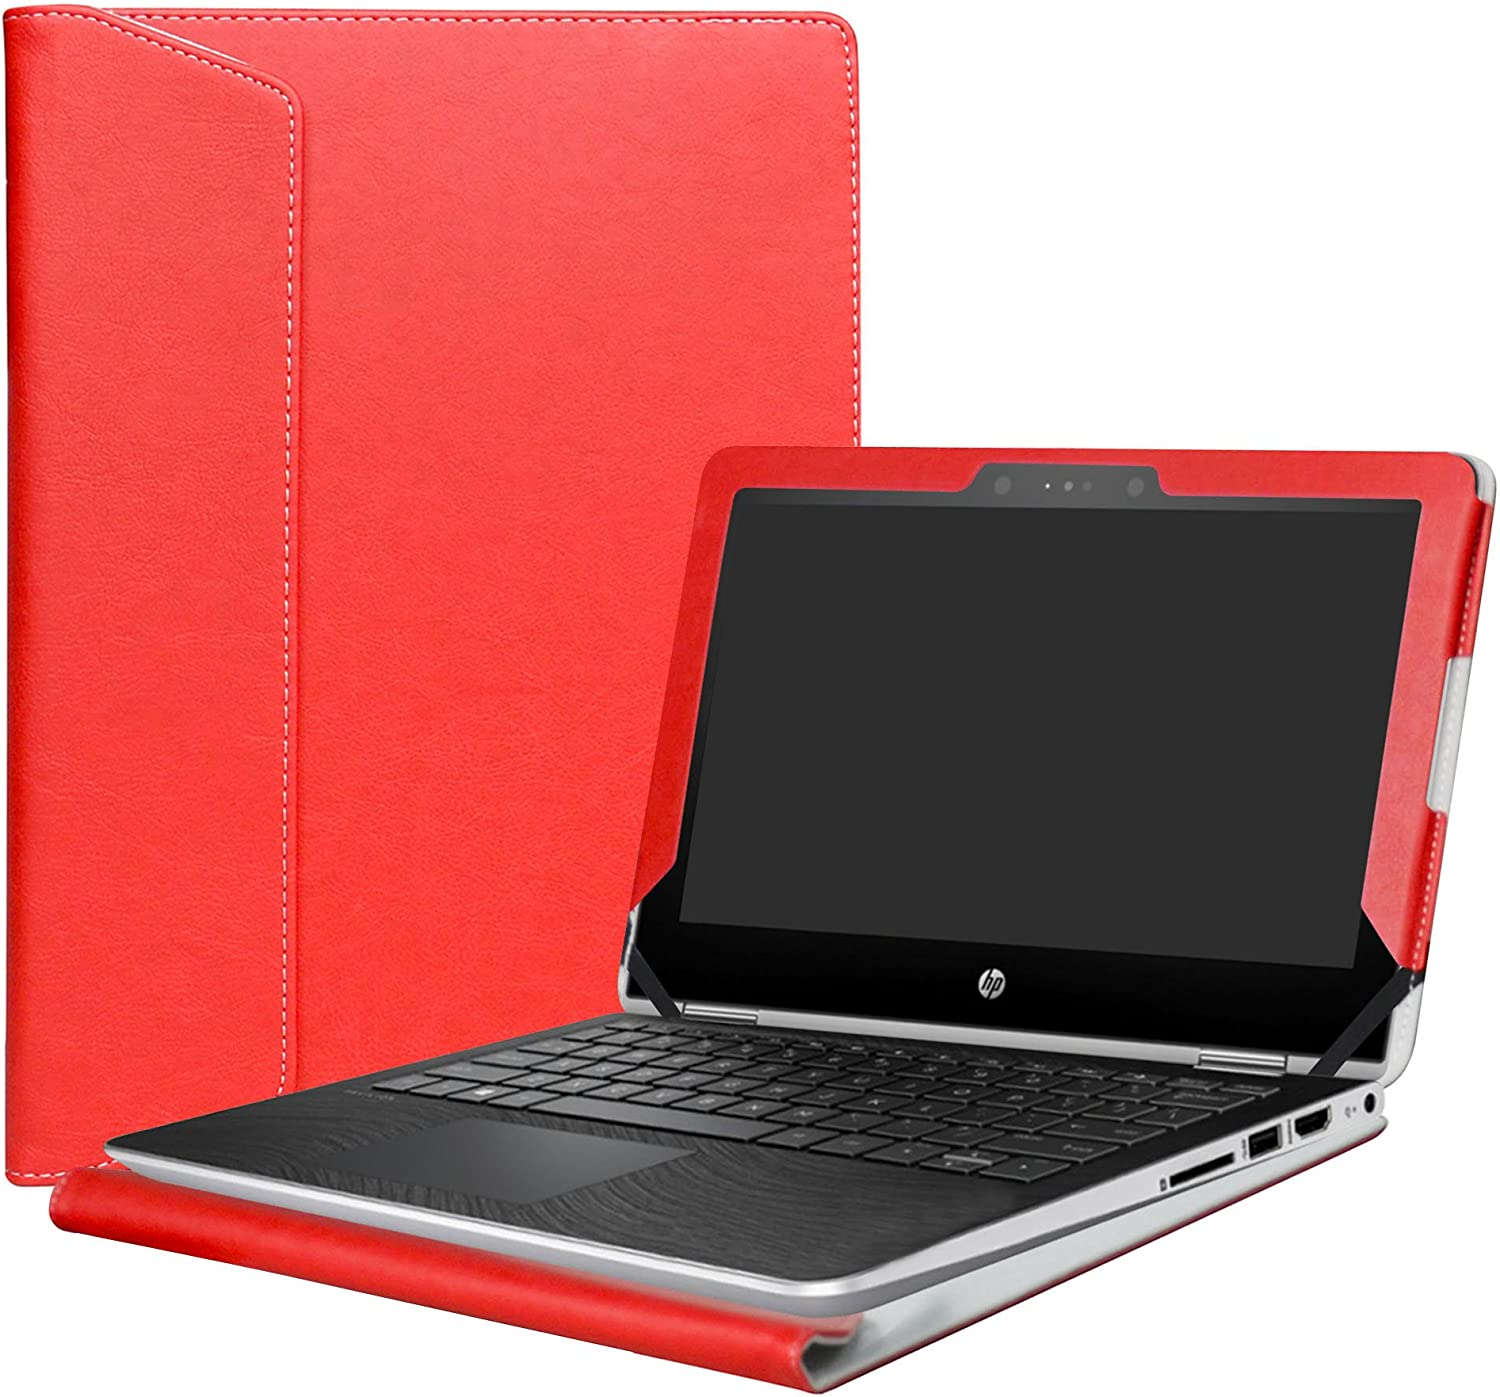 "Alapmk Protective Case Cover for 11.6"" HP Pavilion x360 11 11M-adXXX 11-adXXX 11M-AD013DX Series Laptop(Warning:Not fit Pavilion x360 11 11-kXXX 11-uXXX 11-nXXX Series),Red"